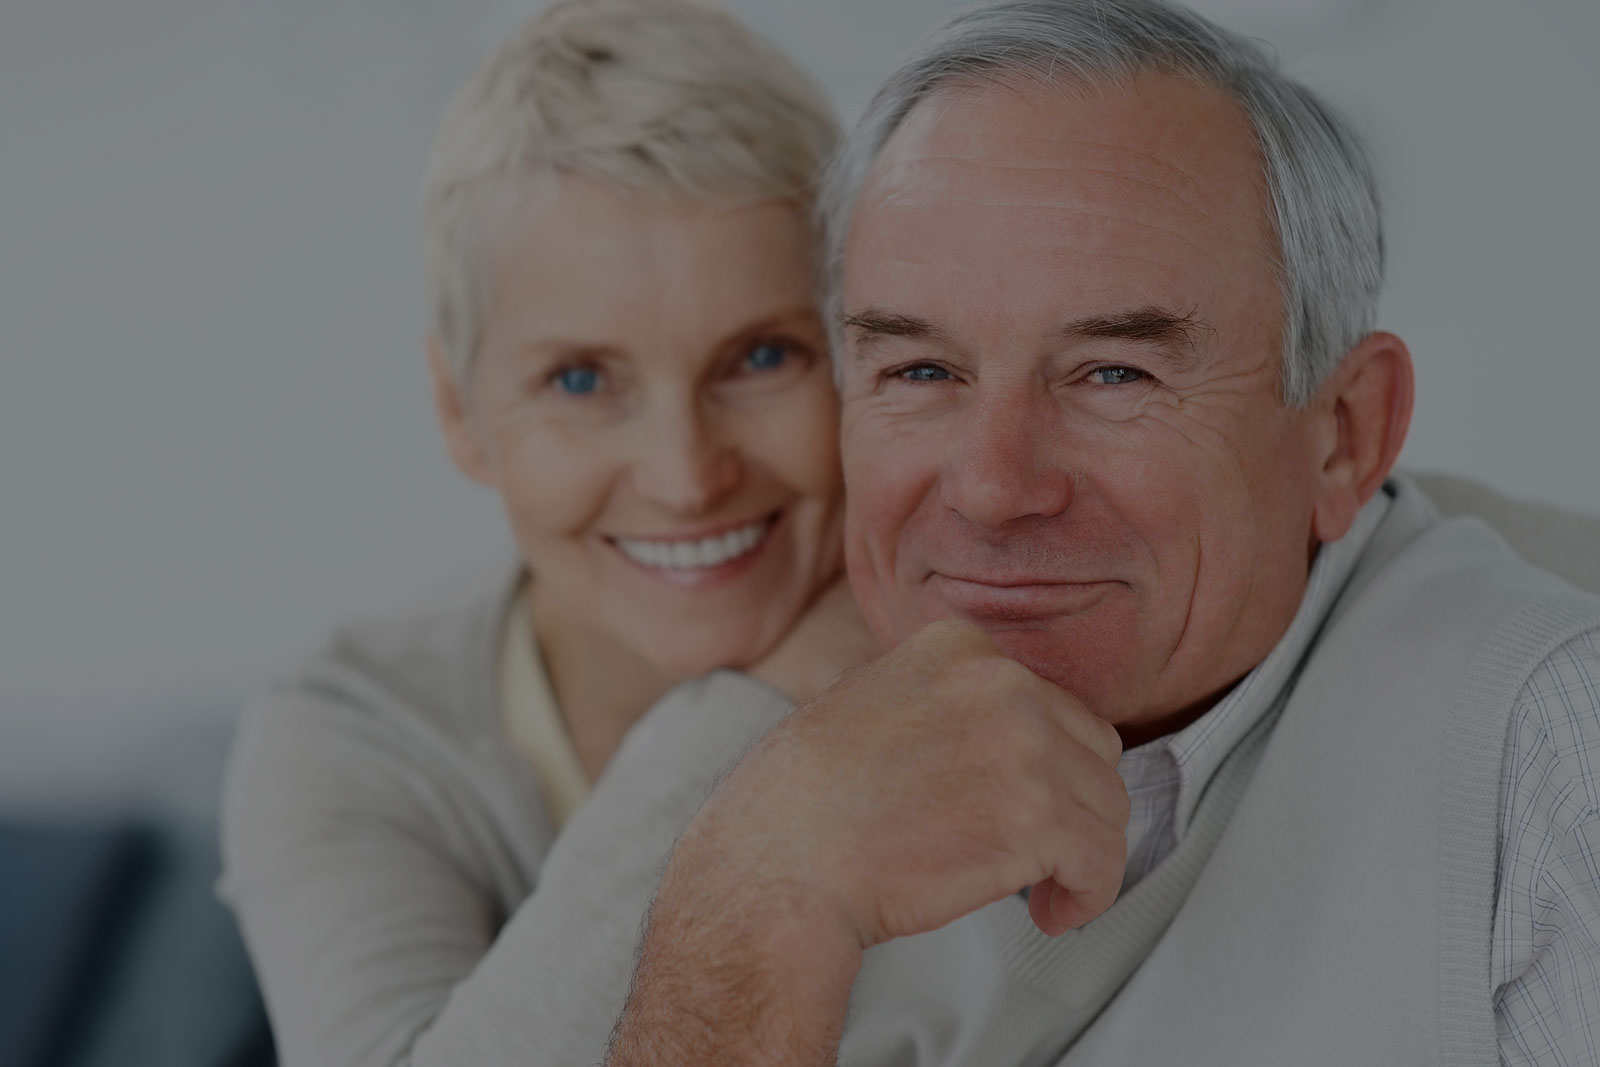 bigstock_Happy_Elderly_Couple_Smiling_T_6361653